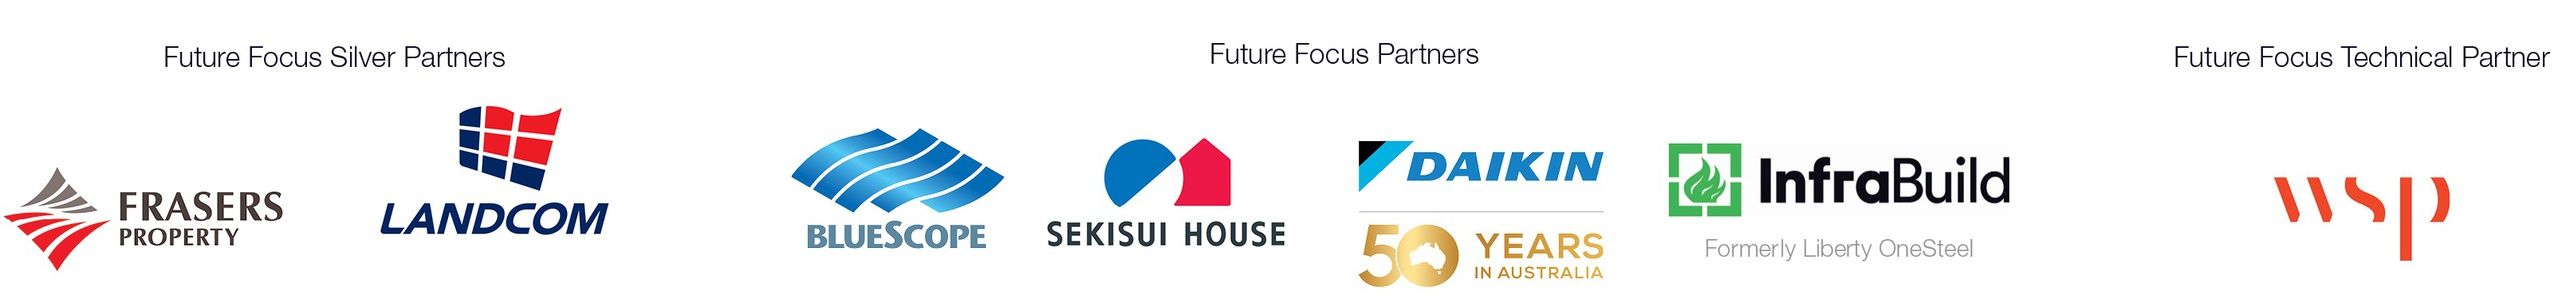 Future Focus Partners